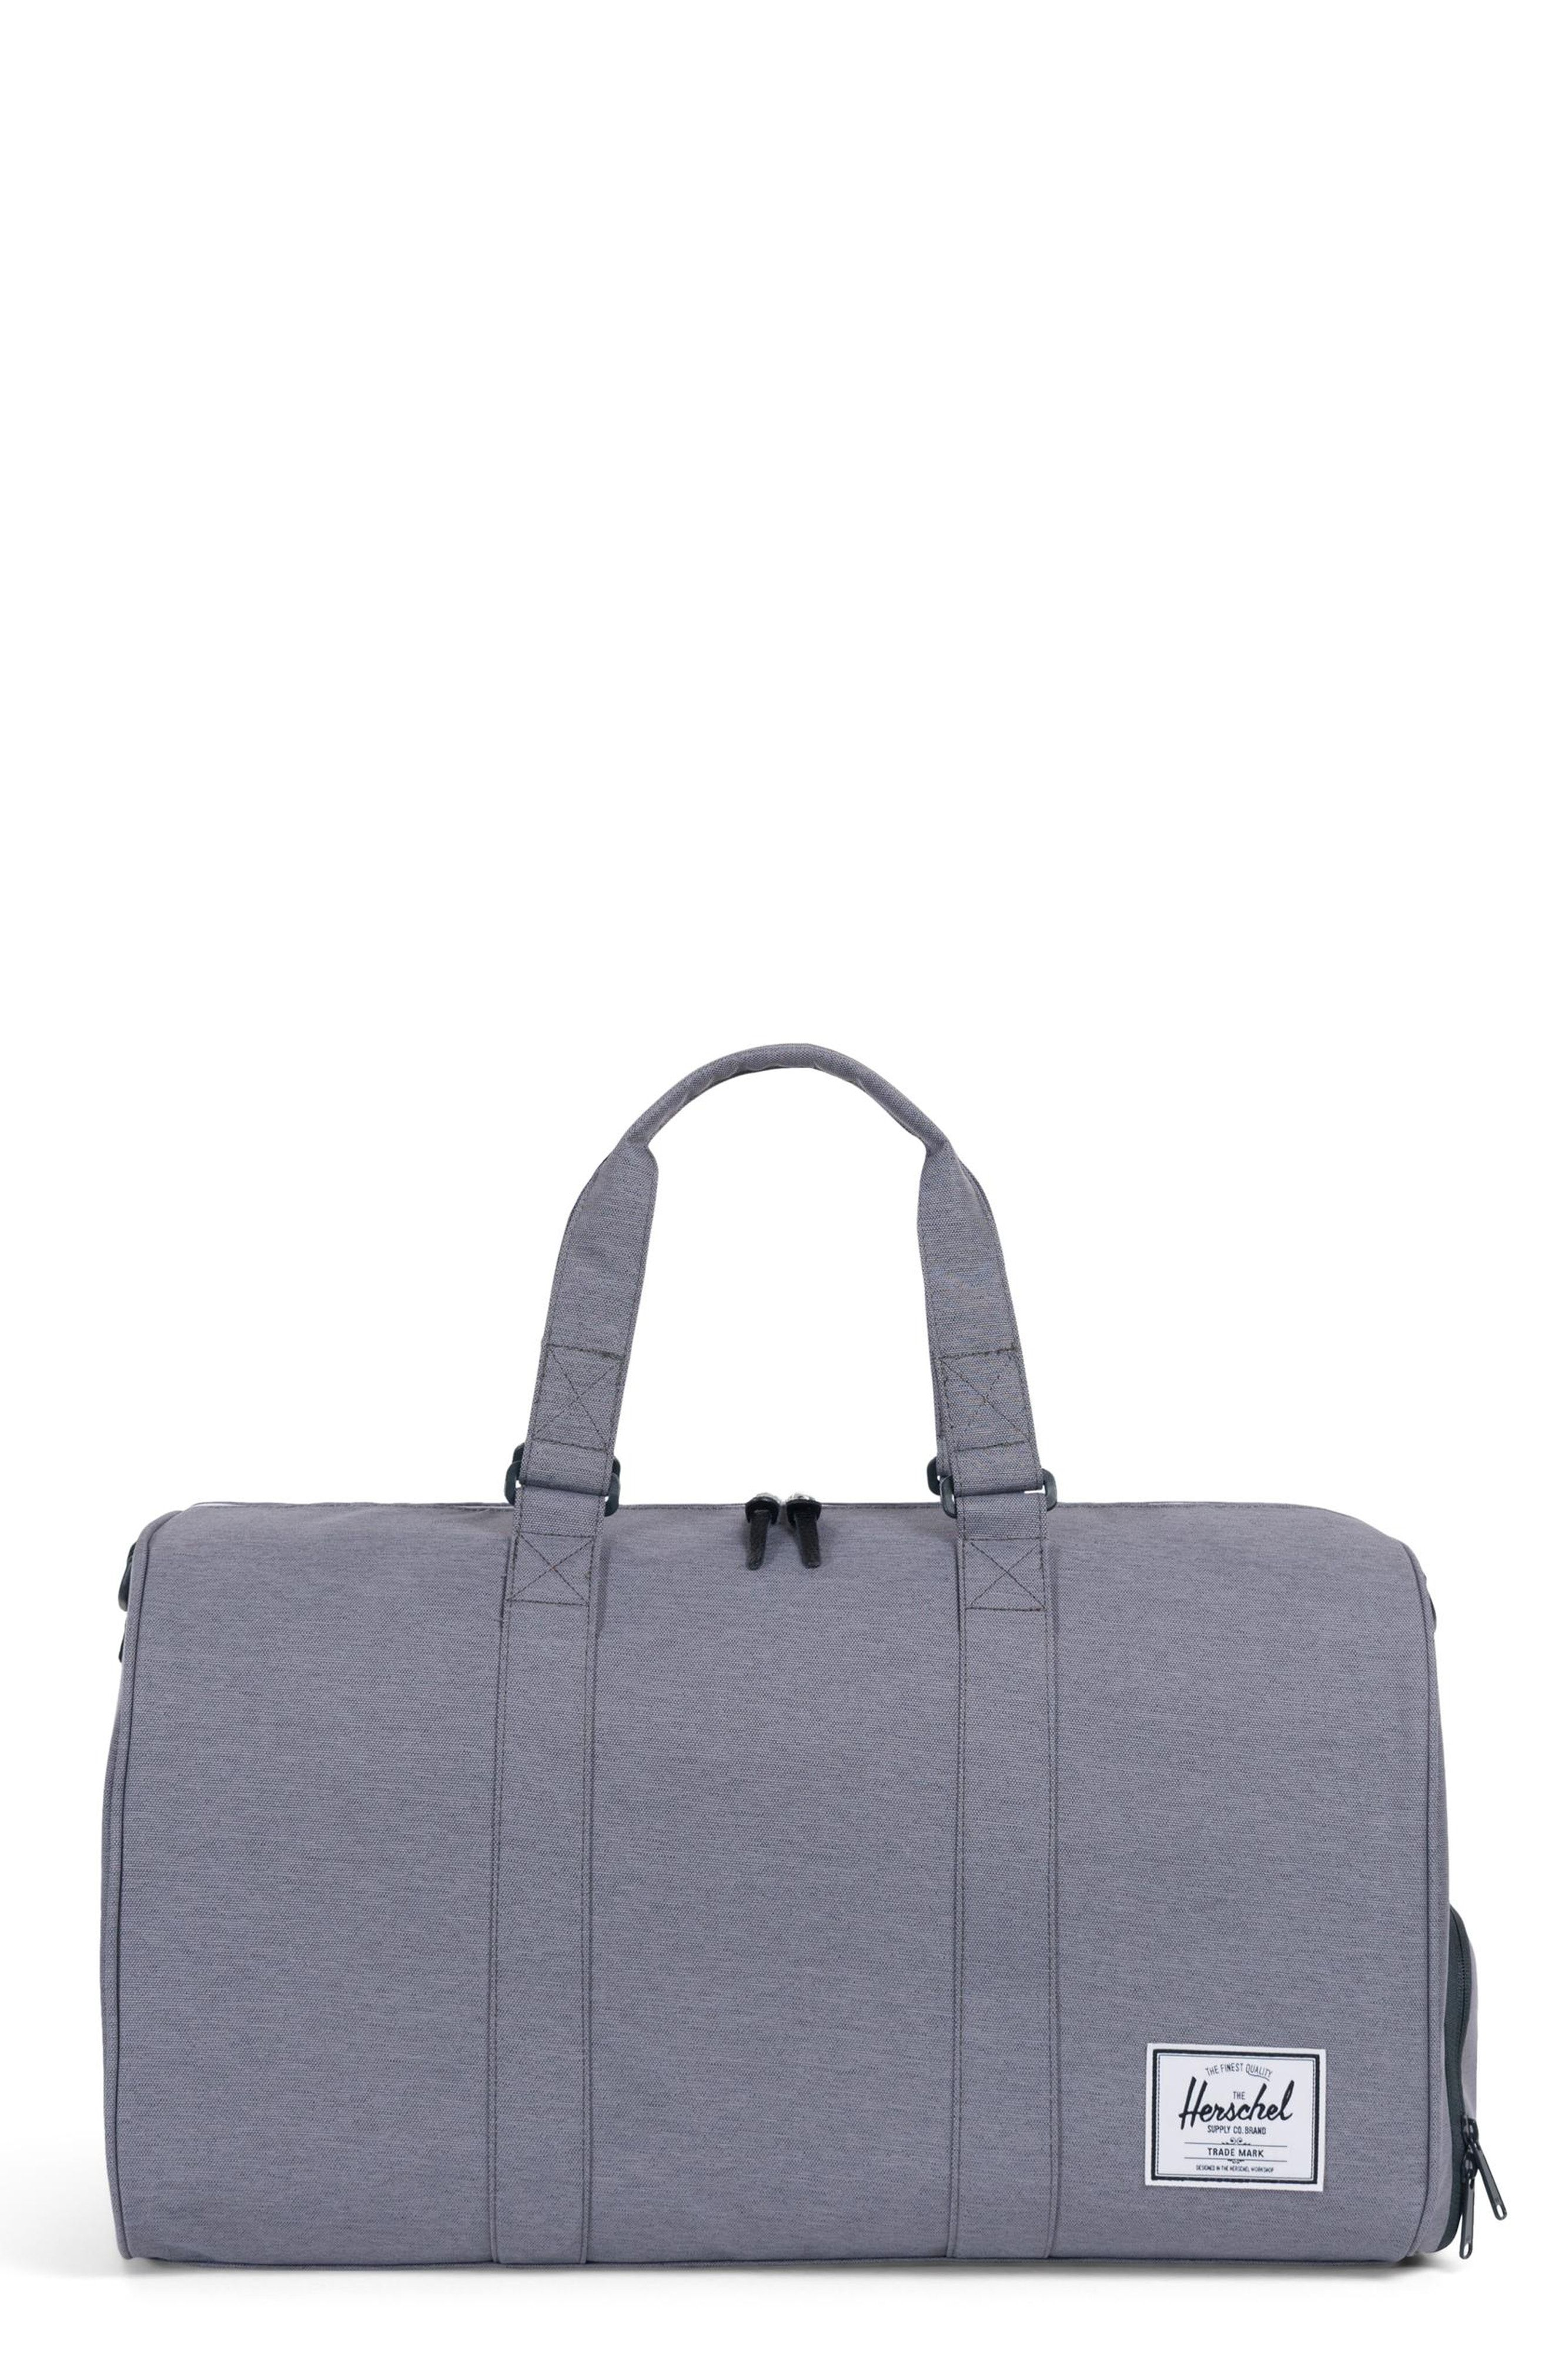 9de7237f26 20 Best Travel Bags for Men - Stylish Men s Weekend Duffel Bags and Luggage